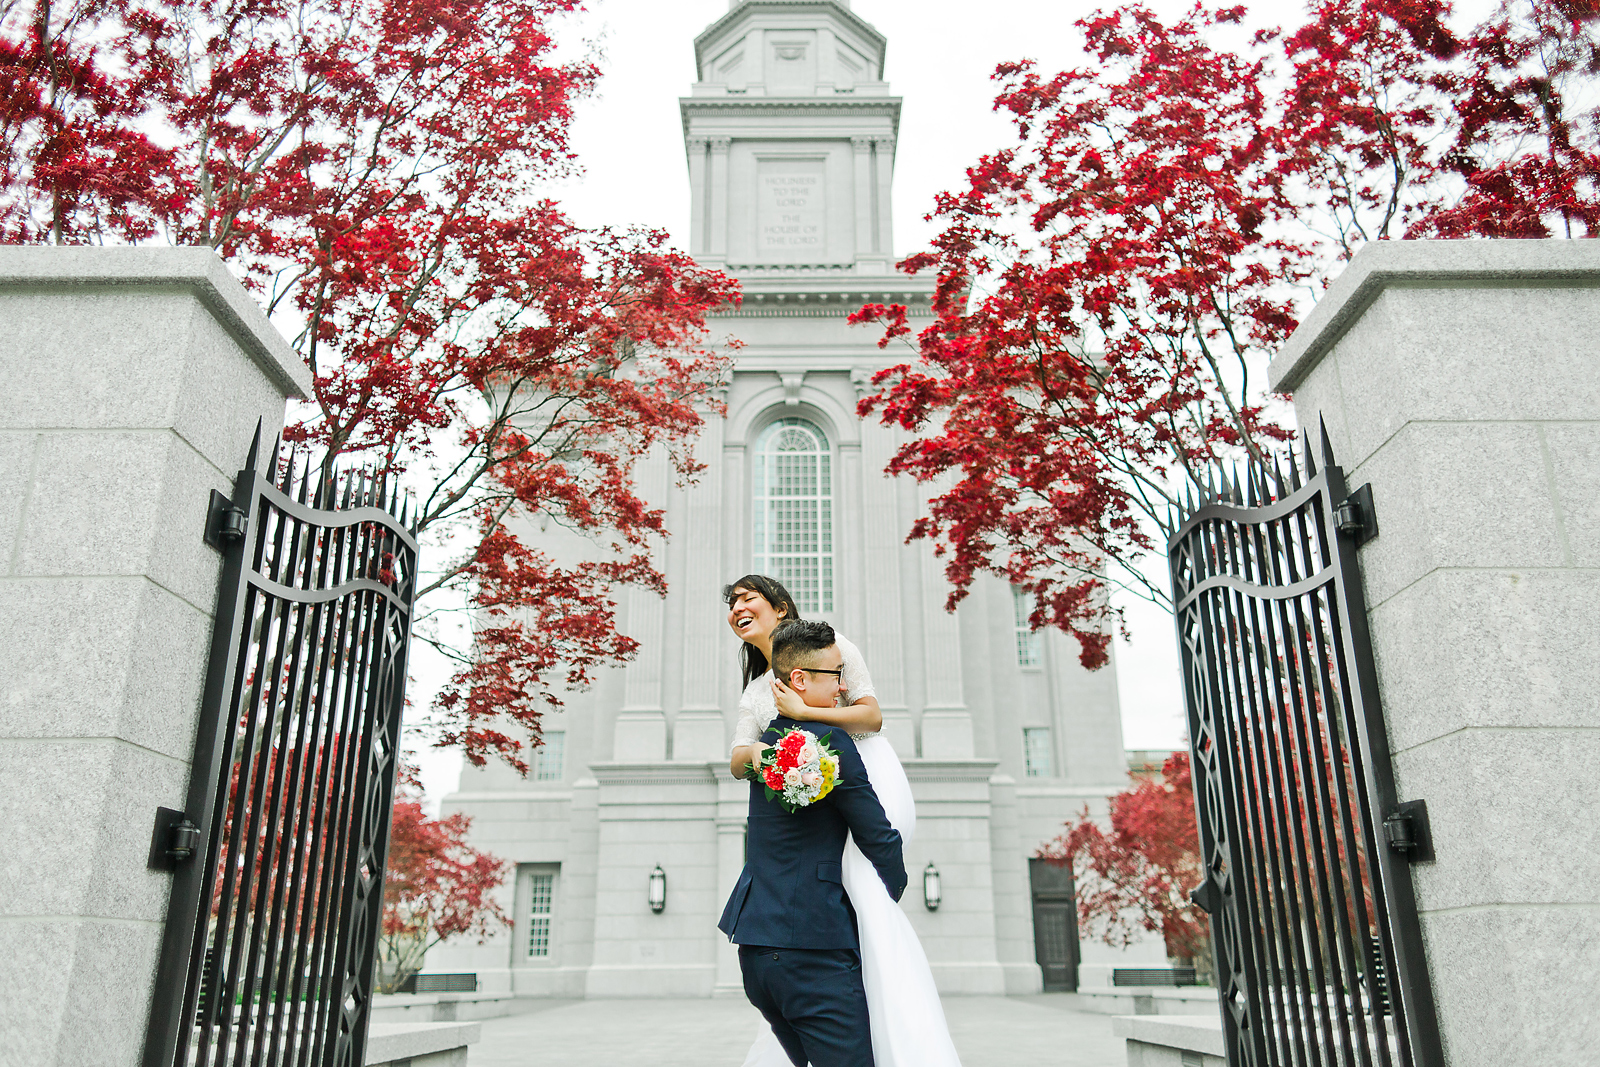 lds_philadelphia_temple_wedding_photography_015.jpg